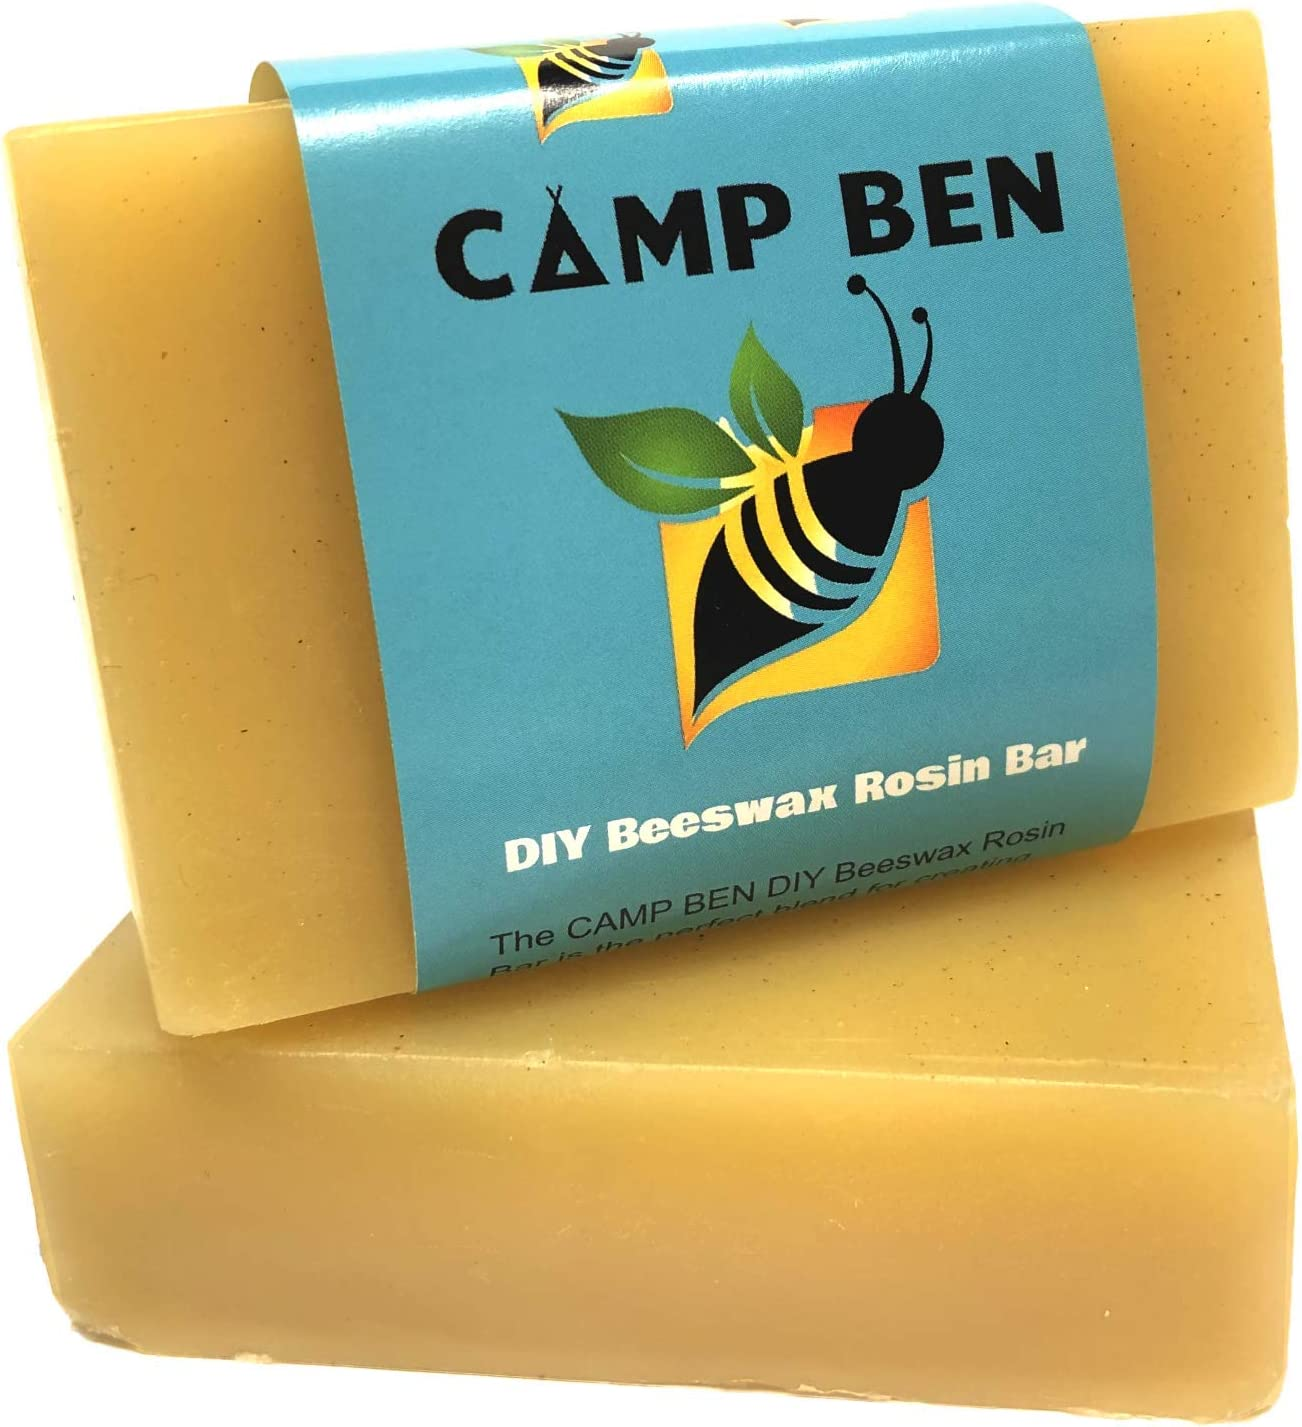 CAMP BEN Beeswax Rosin DIY Bar - 3 oz Ready to Use & Fast Melting - Do It Yourself Cloth Bowl Covers, Food Sandwich Wraps, Snack Bags - Pine Resin PreMixed - All Natural Food Safe, Replaces Plastic